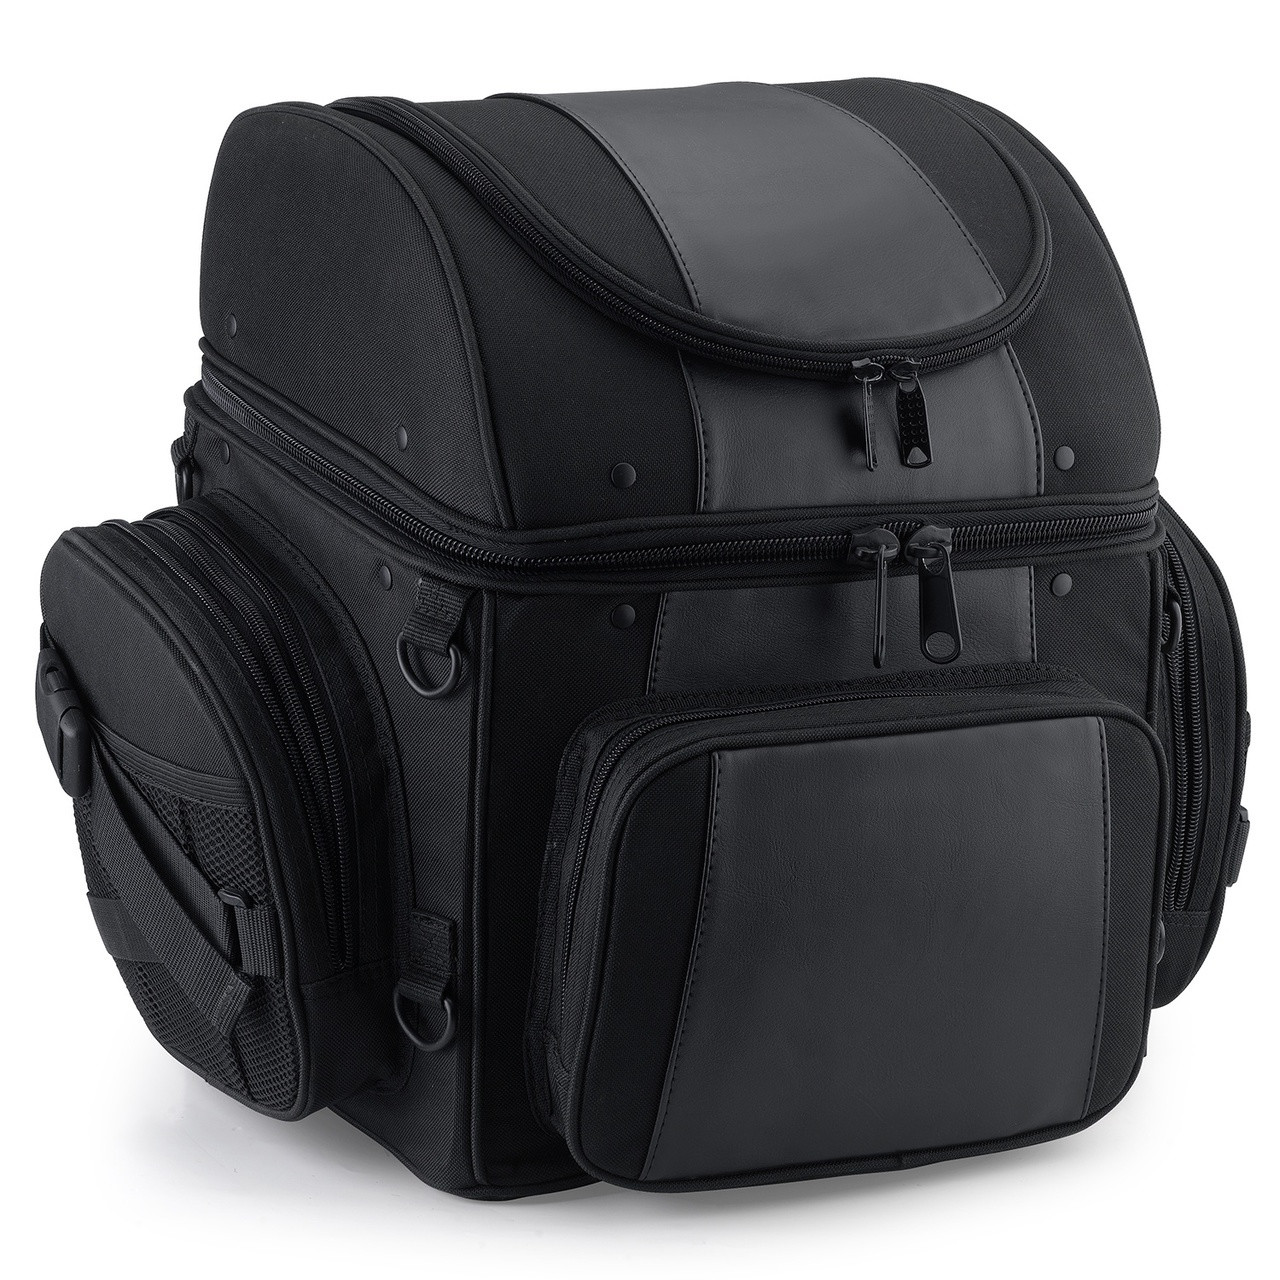 Medium Motorcycle Back Seat Luggage (1,800 cubic inches)  Main image